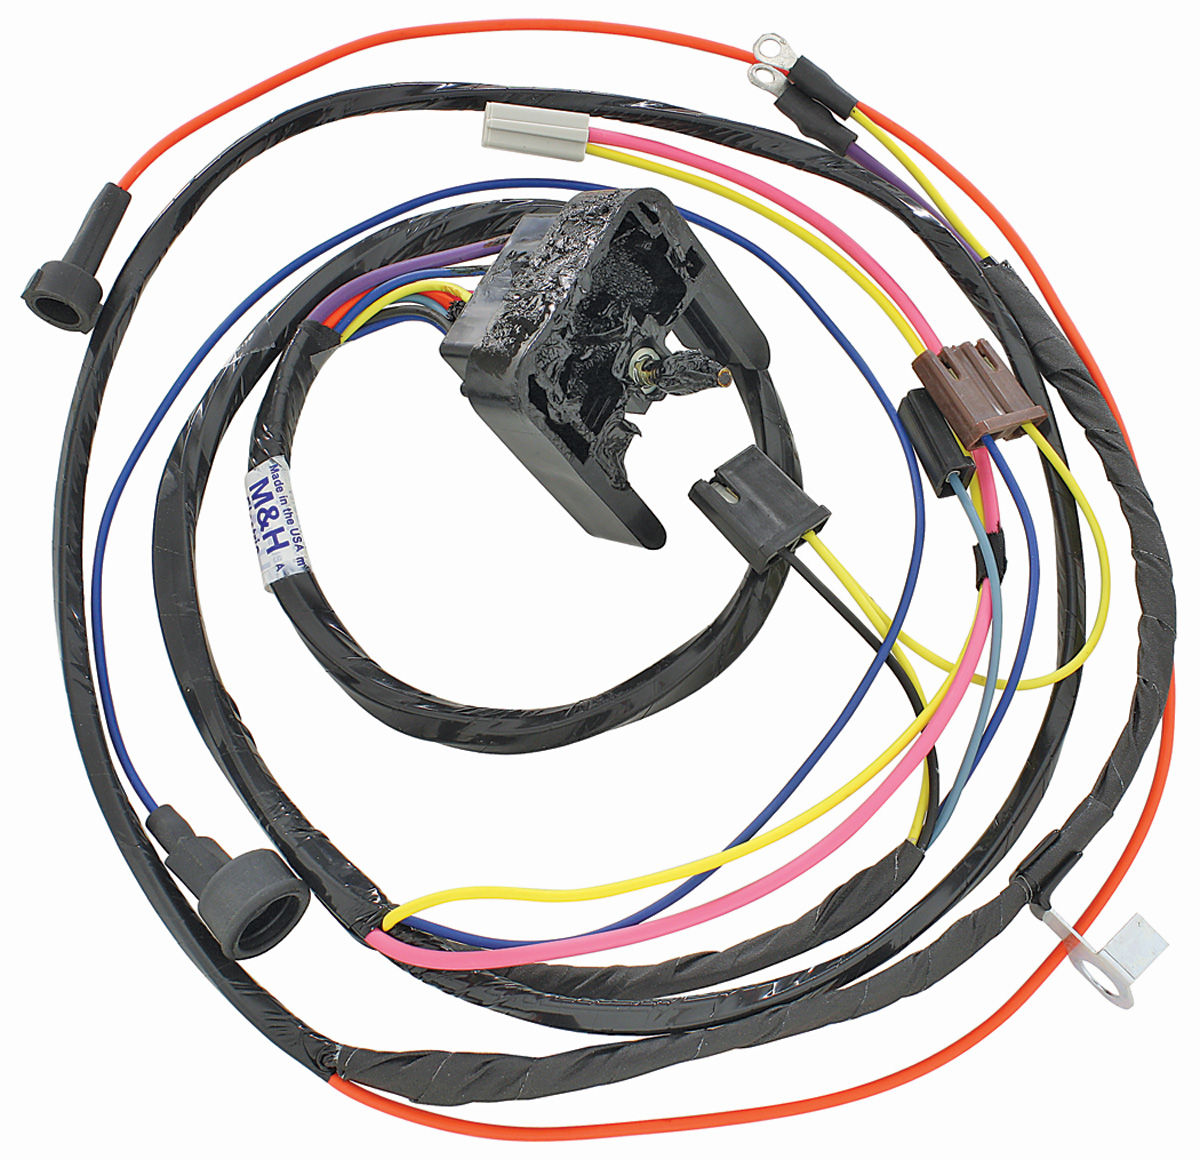 Wiring Harness, Engine, 1968-69 Chevelle/El Camino, 396/HEI/Warning Lights  @ OPGI.comOPGI